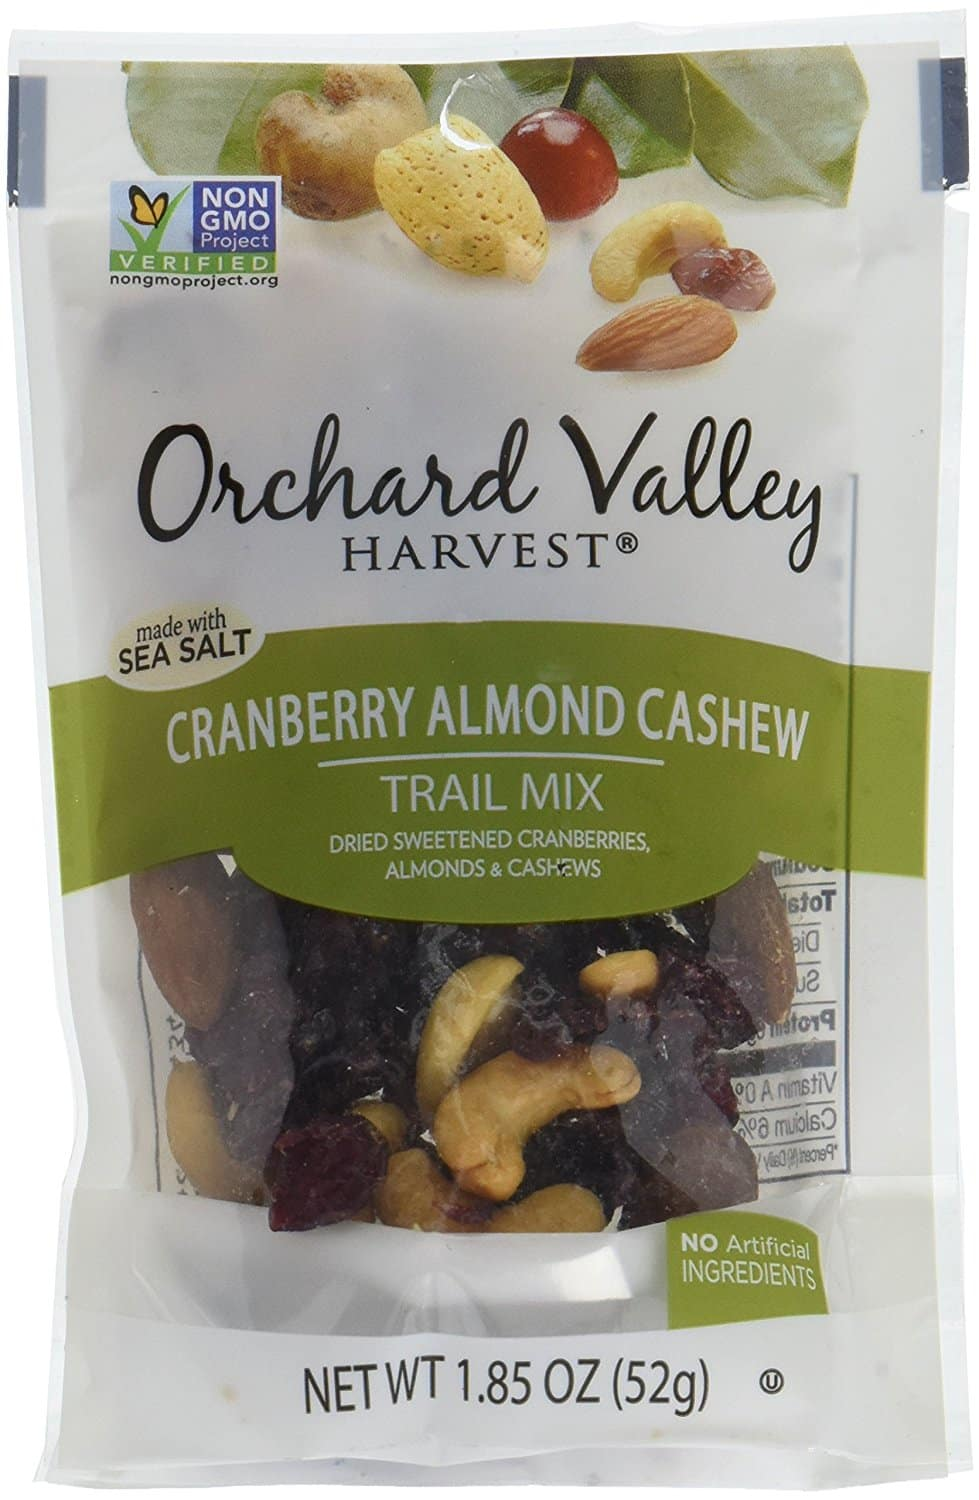 14-Pack 1.85oz Orchard Valley Cranberry Almond Cashew Trail Mix $12.20